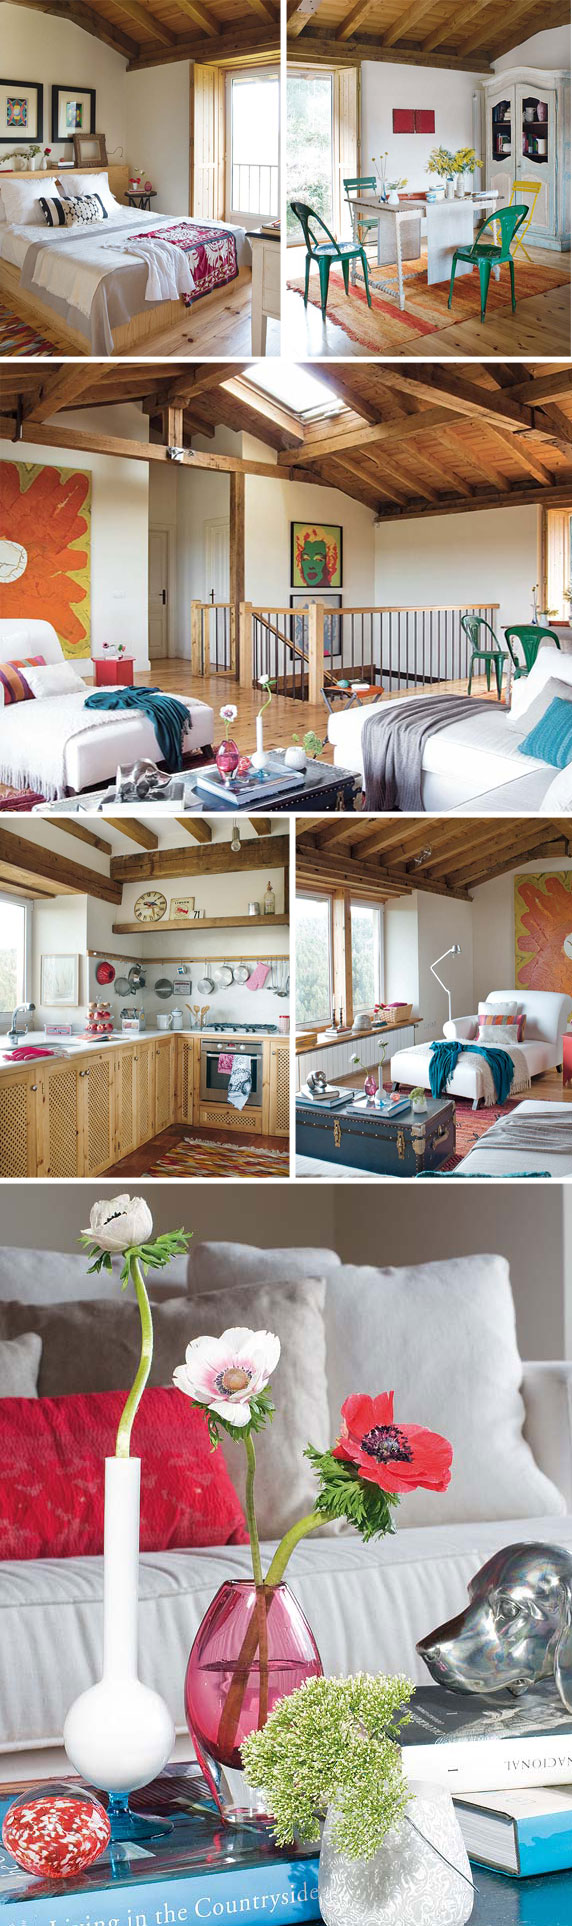 summer cottage decorating ideas colors wood 2 Summer Cottage Decorating Ideas: colors and wood